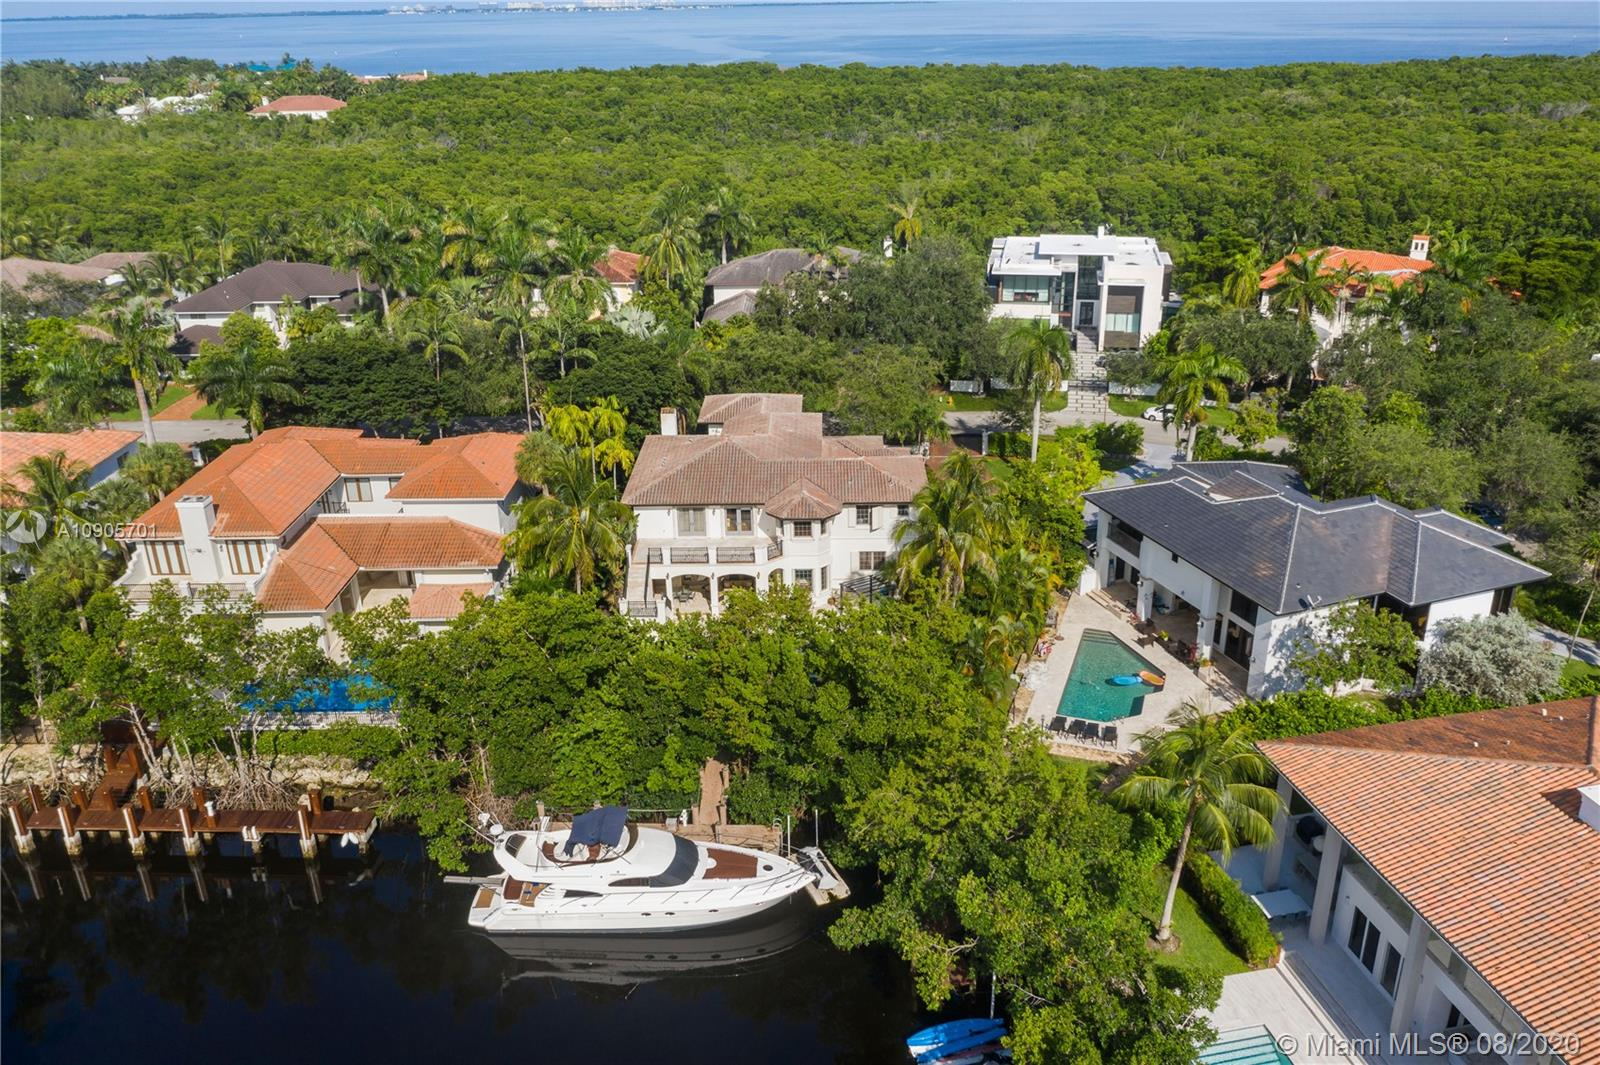 Mediterranean, timeless two-story waterfront in one of Miami's most prestigious neighborhoods. Fits a 60ft yacht,1 bridge to bay, boating double height ceilings, elegant LVG rm & floating staircase, warm finishes from marble, travertine & mahogany finishes throughout; all bedrooms are en-suites, all 7.5 baths are tastefully remodeled, space to add an elevator, chef's kitchen, grand family room opens up to the covered terrace, pristine pool & spa surrounded by lush foliage making an excellent space for private entertainment w/ a tropical pathway to your boat! 2nd floor has 4 suites including the grand master suite w/ expansive terrace & staircase to the pool; 3 car garage & maid's quarters! Cocoplum is a gated 24hr security enclave offering a clubhouse, t-courts, gym, B-ball & a playground!